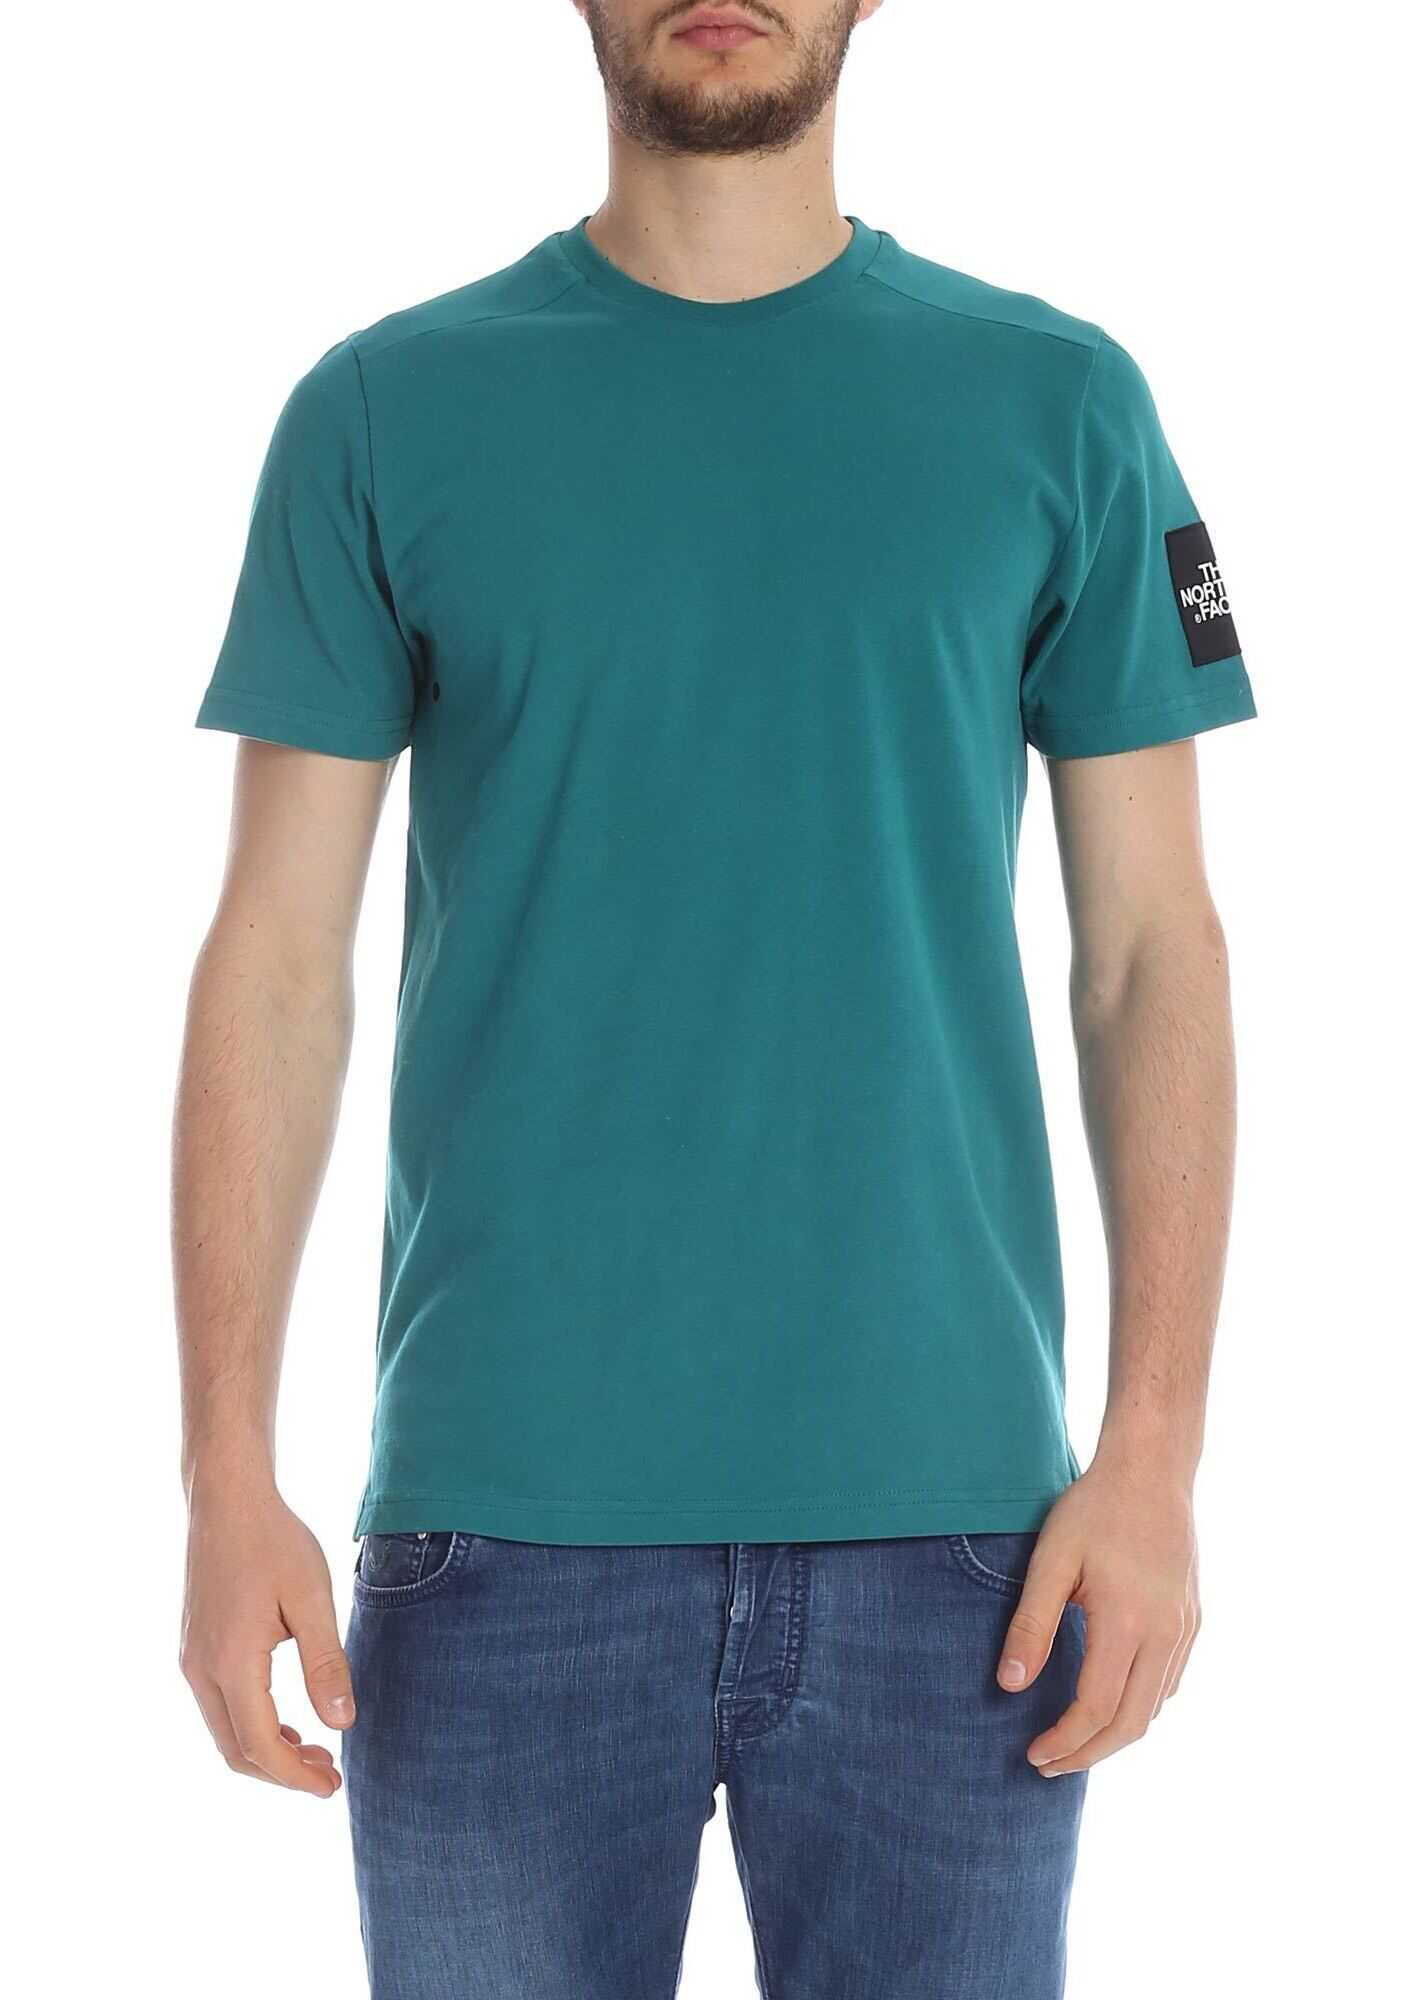 Teal Green T-Shirt With Logo